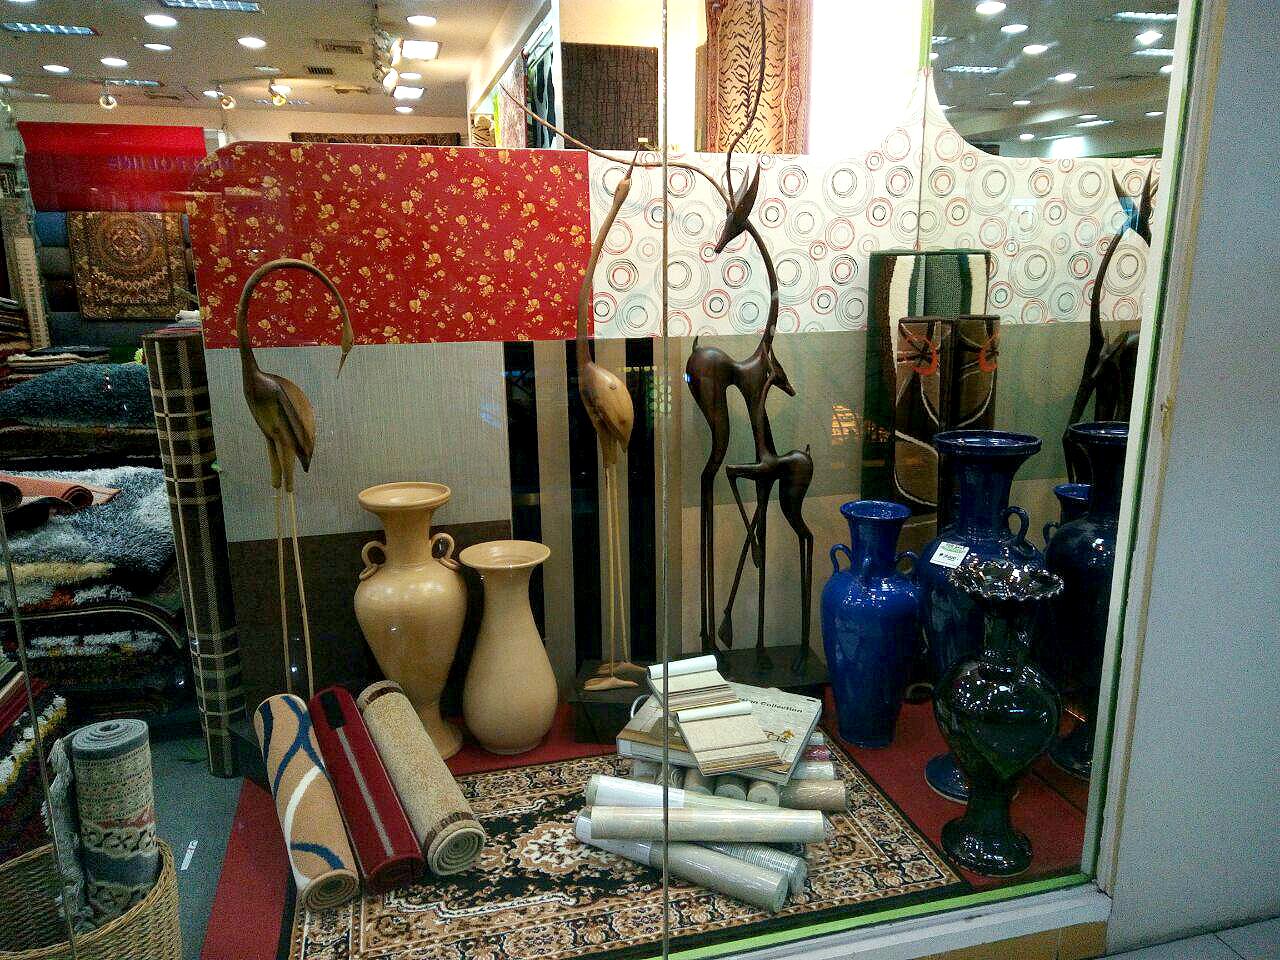 Wood Interior Decors and Vases